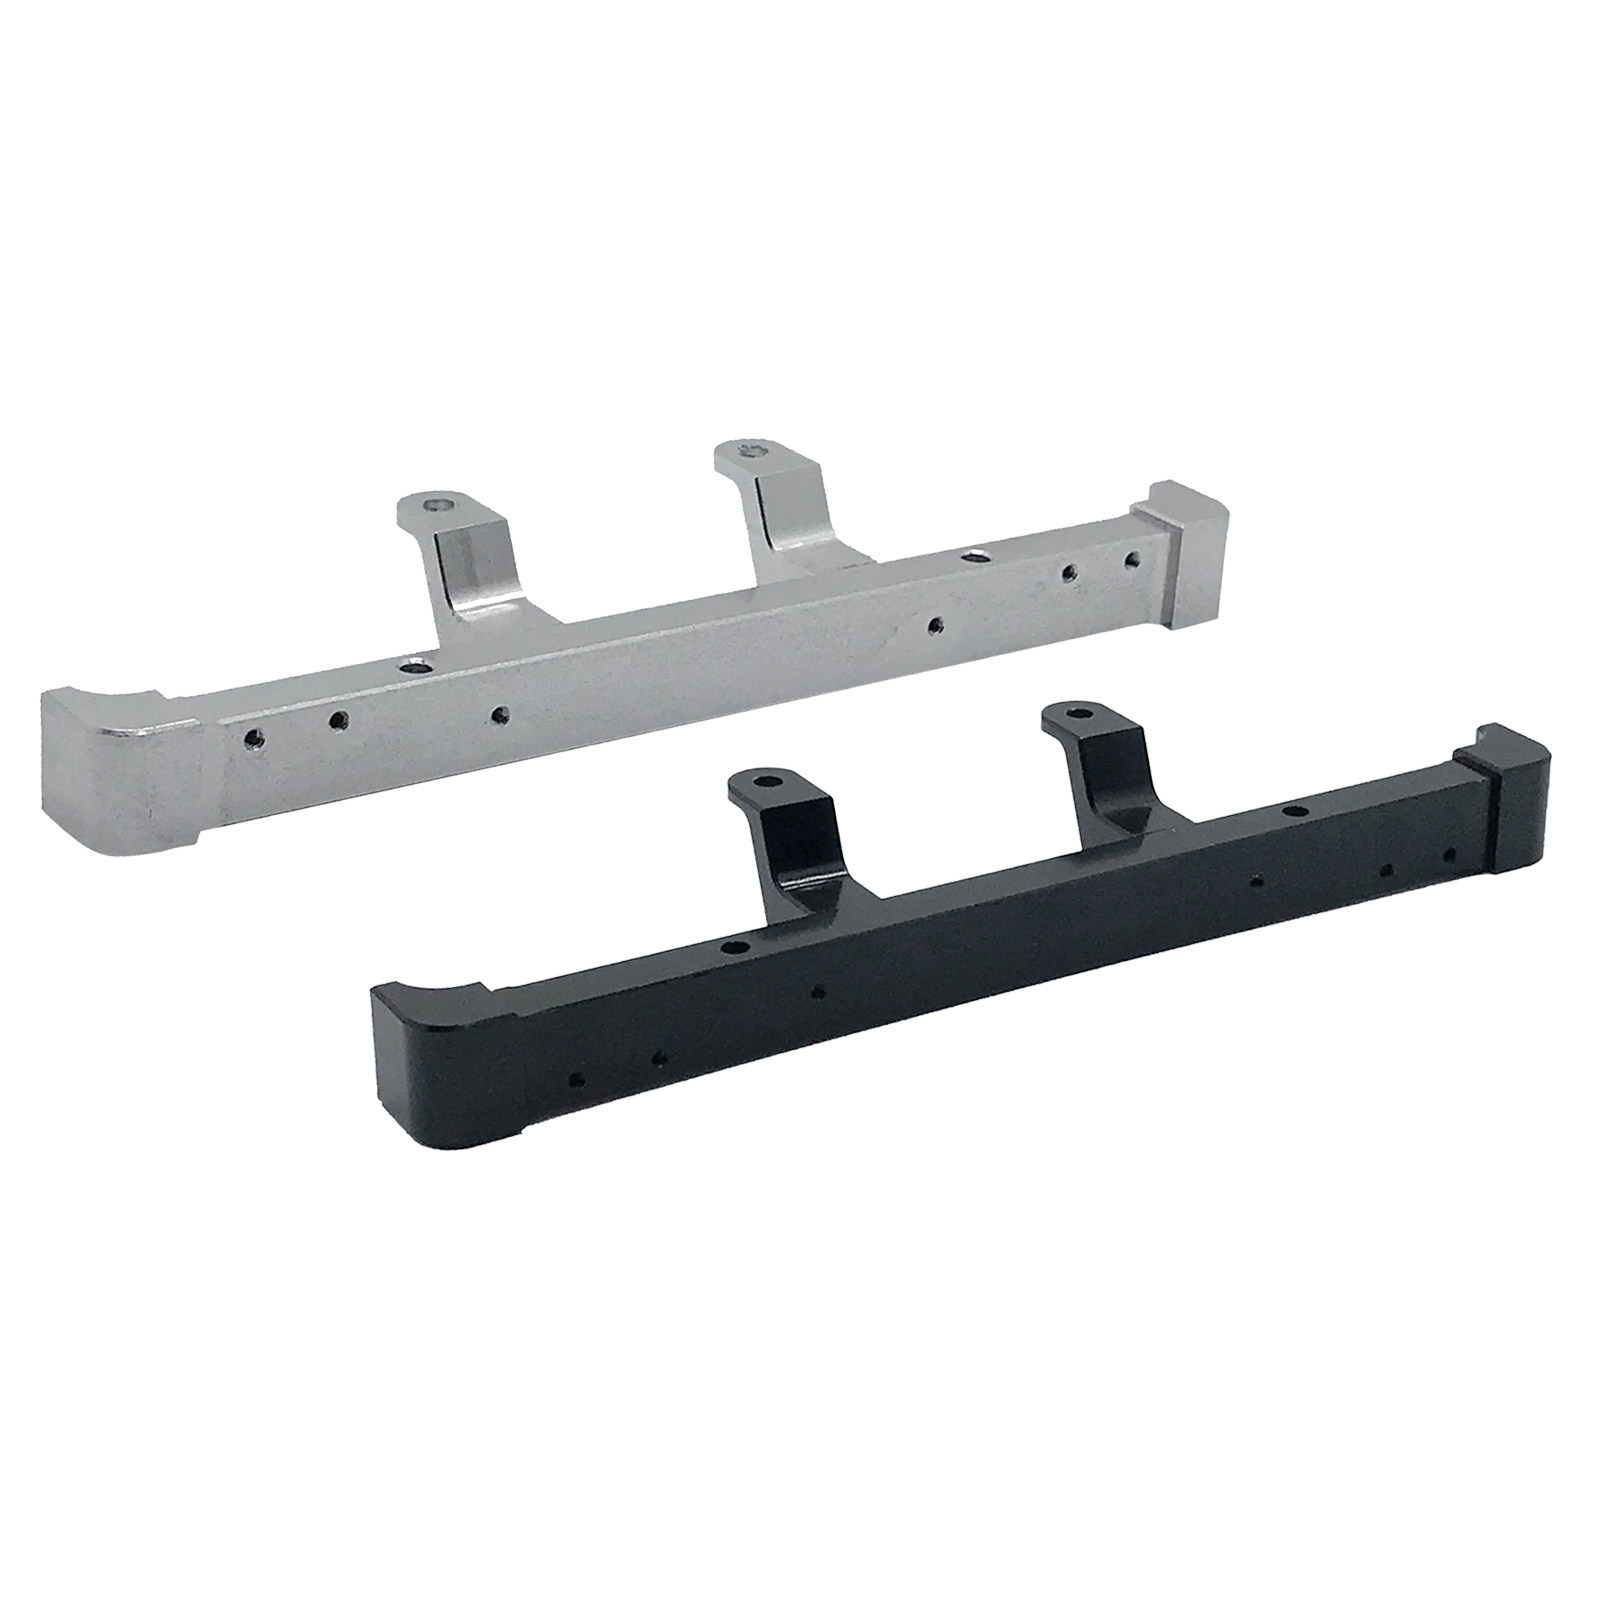 Andifany Door-Shaped Metal Front Bumper with Trailer Hook for MN D90 D91 D99S 1//12 RC Car Upgrade Parts Accessories,Titanium